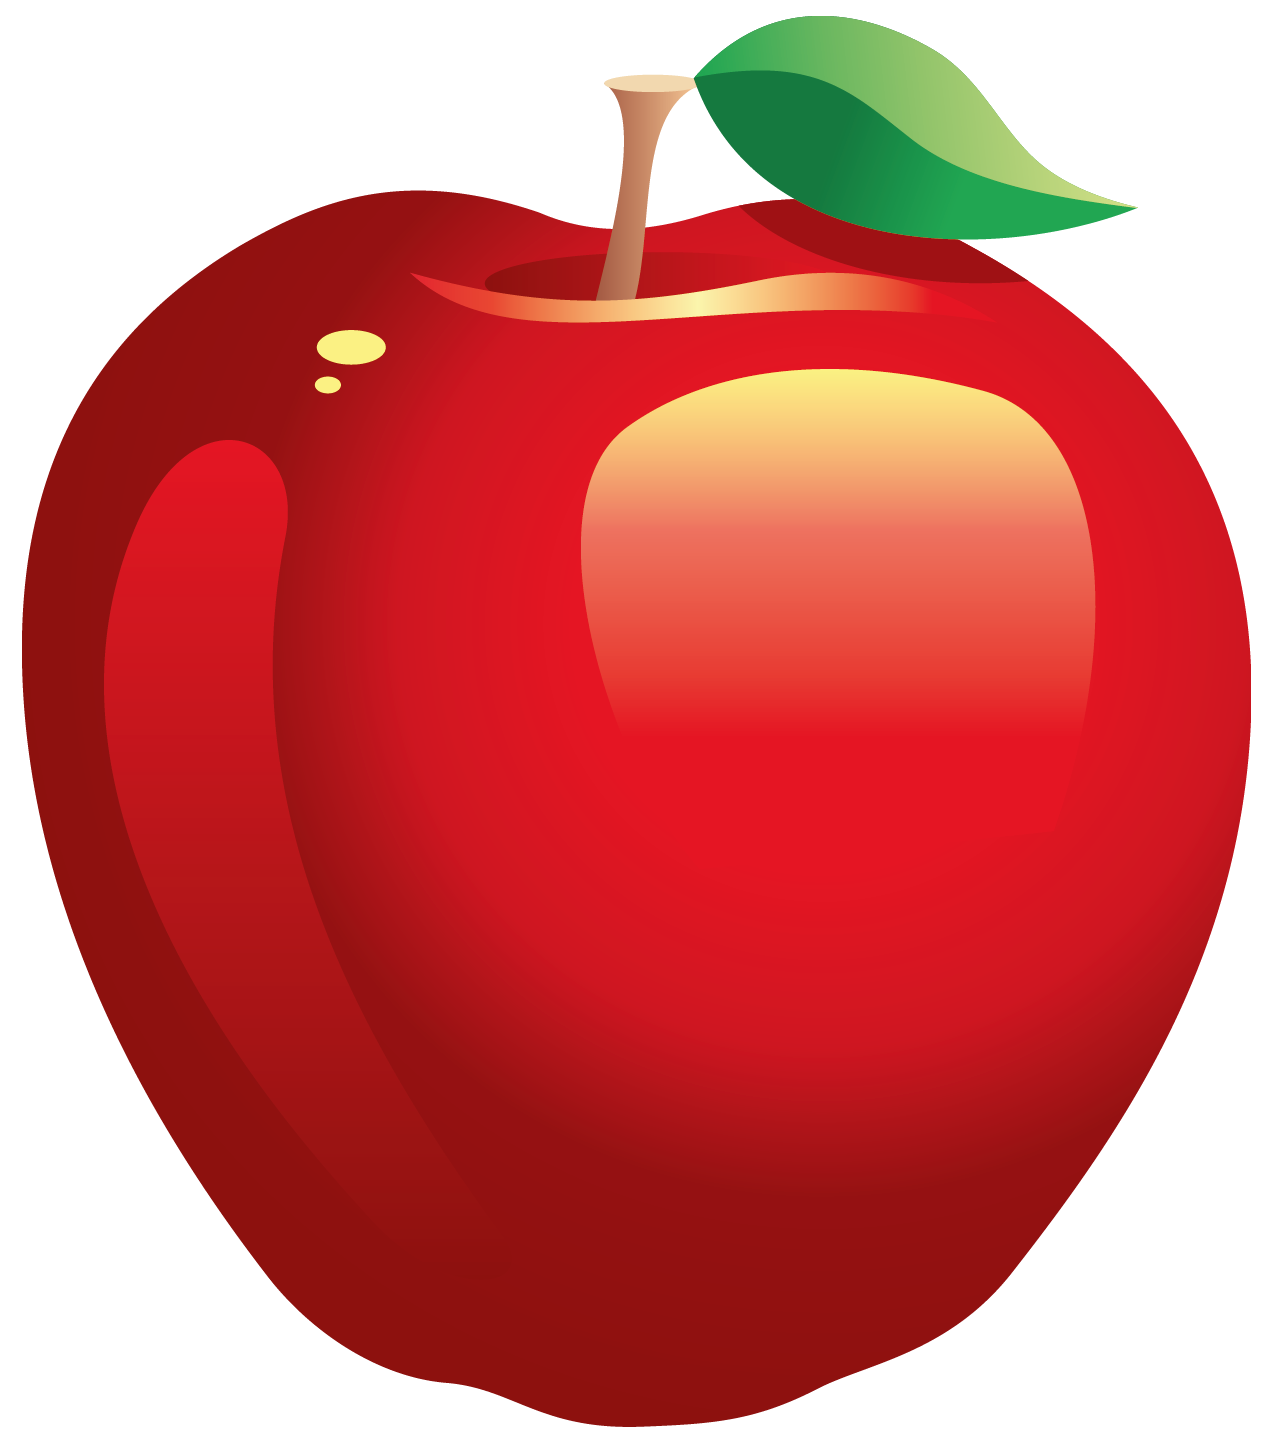 Inside apple clipart png download Large Painted Red Apple PNG Clipart | AN APPLE A DAY | Pinterest ... png download